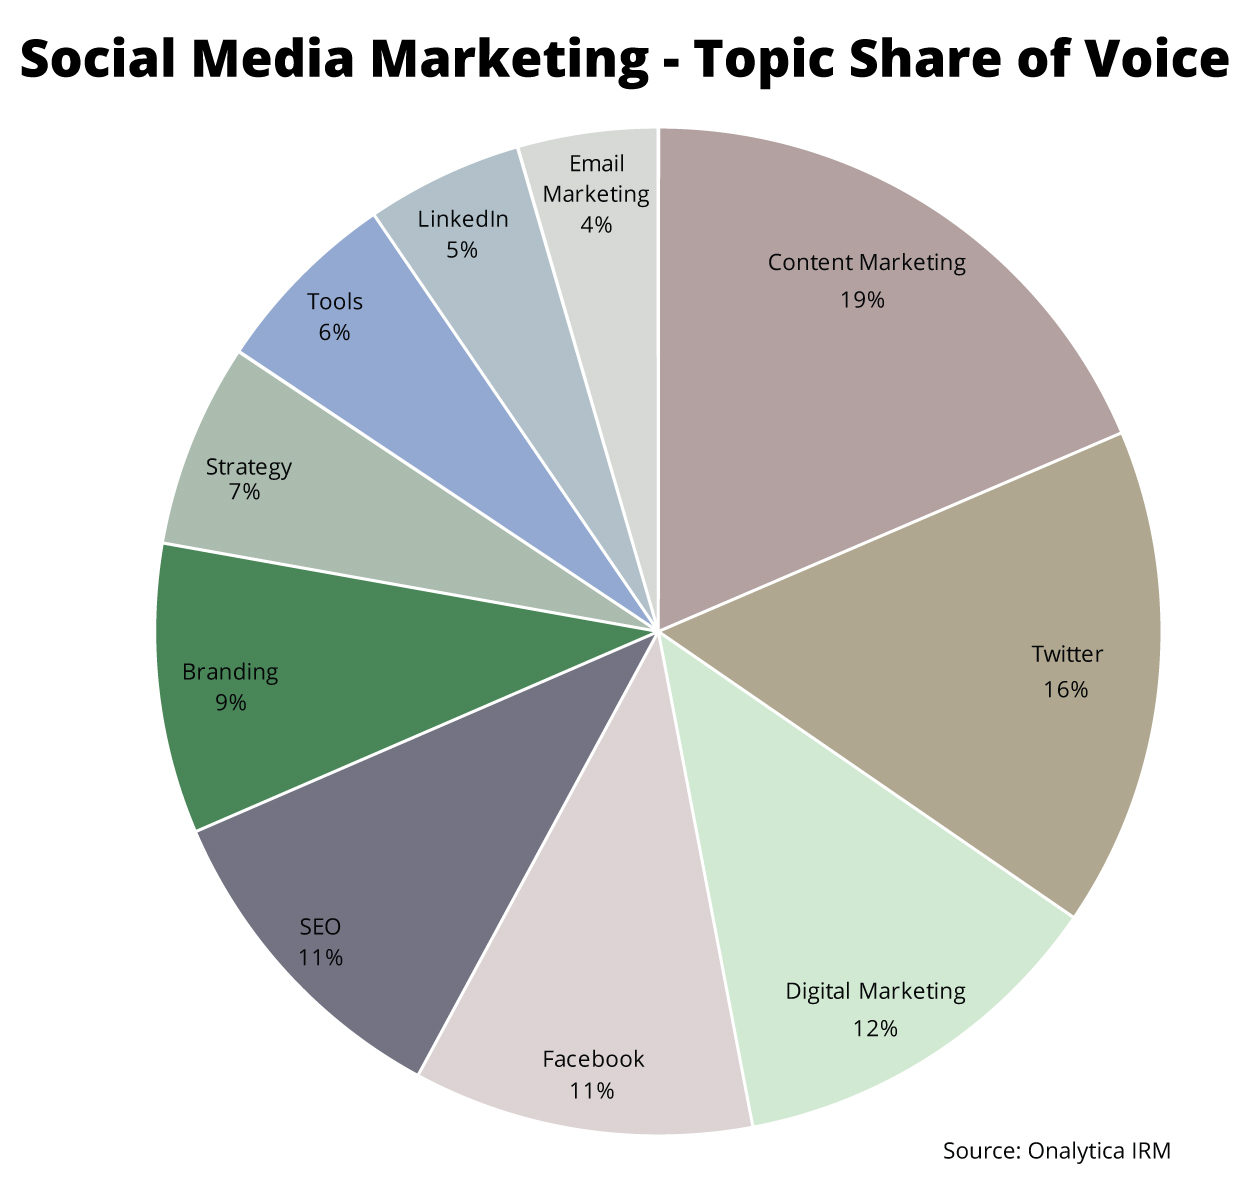 Onalytica - Social Media Marketing 2016 - Top 100 Influencers and Brands - Topic Share of Voice